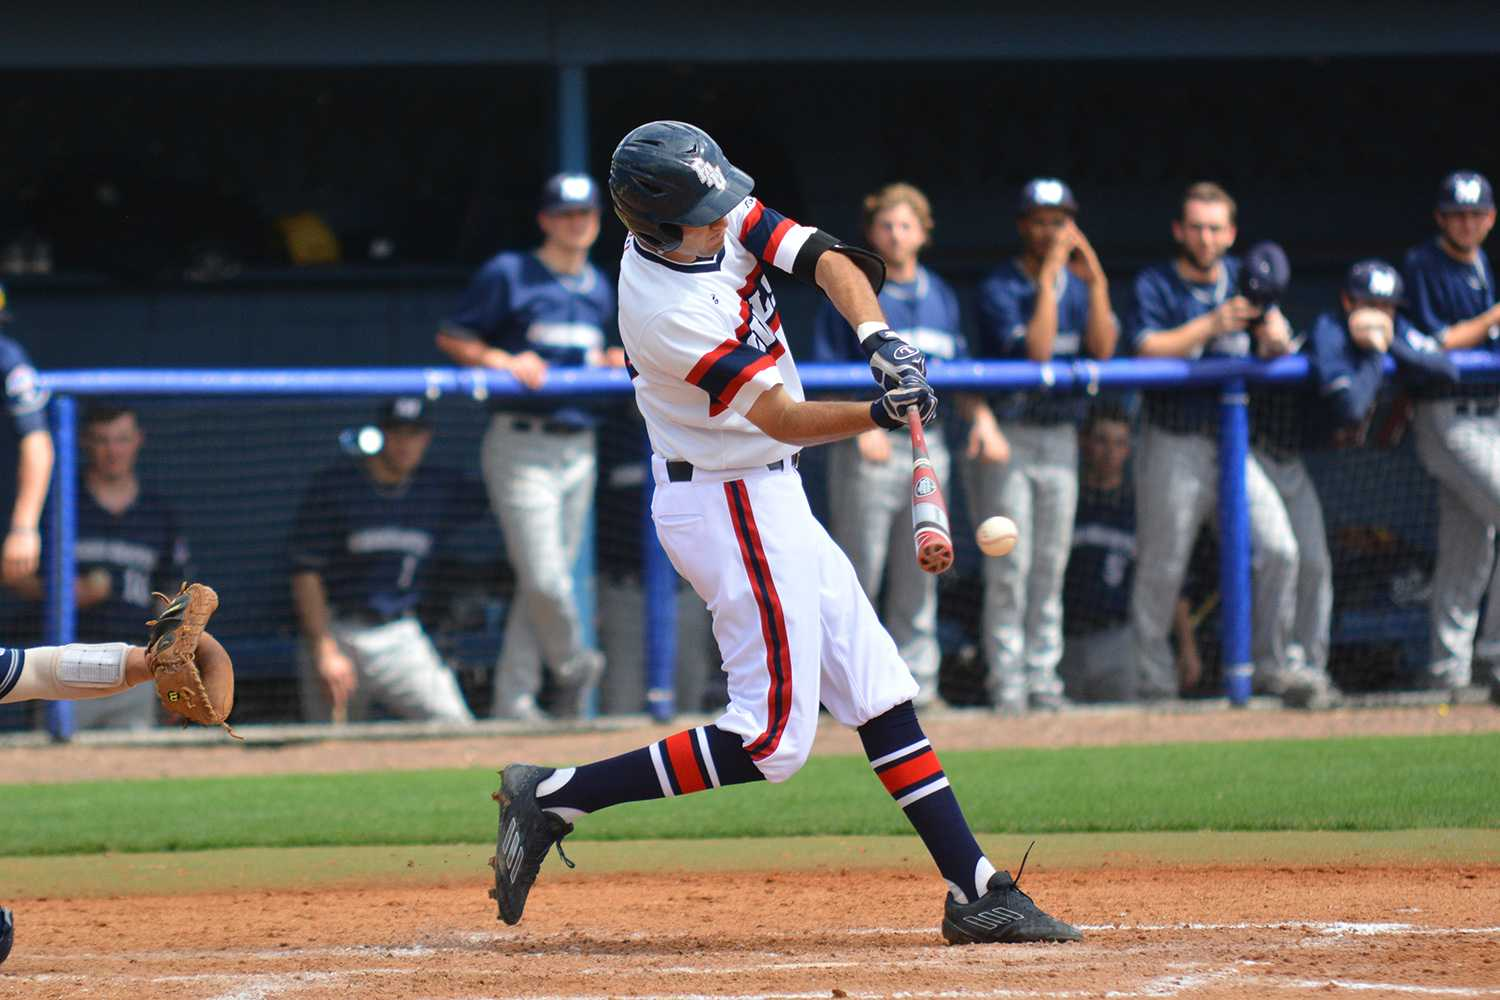 Shortstop CJ Chatham makes contact for his only hit of the second game in the series to add to FAU's 13 hits in the game.